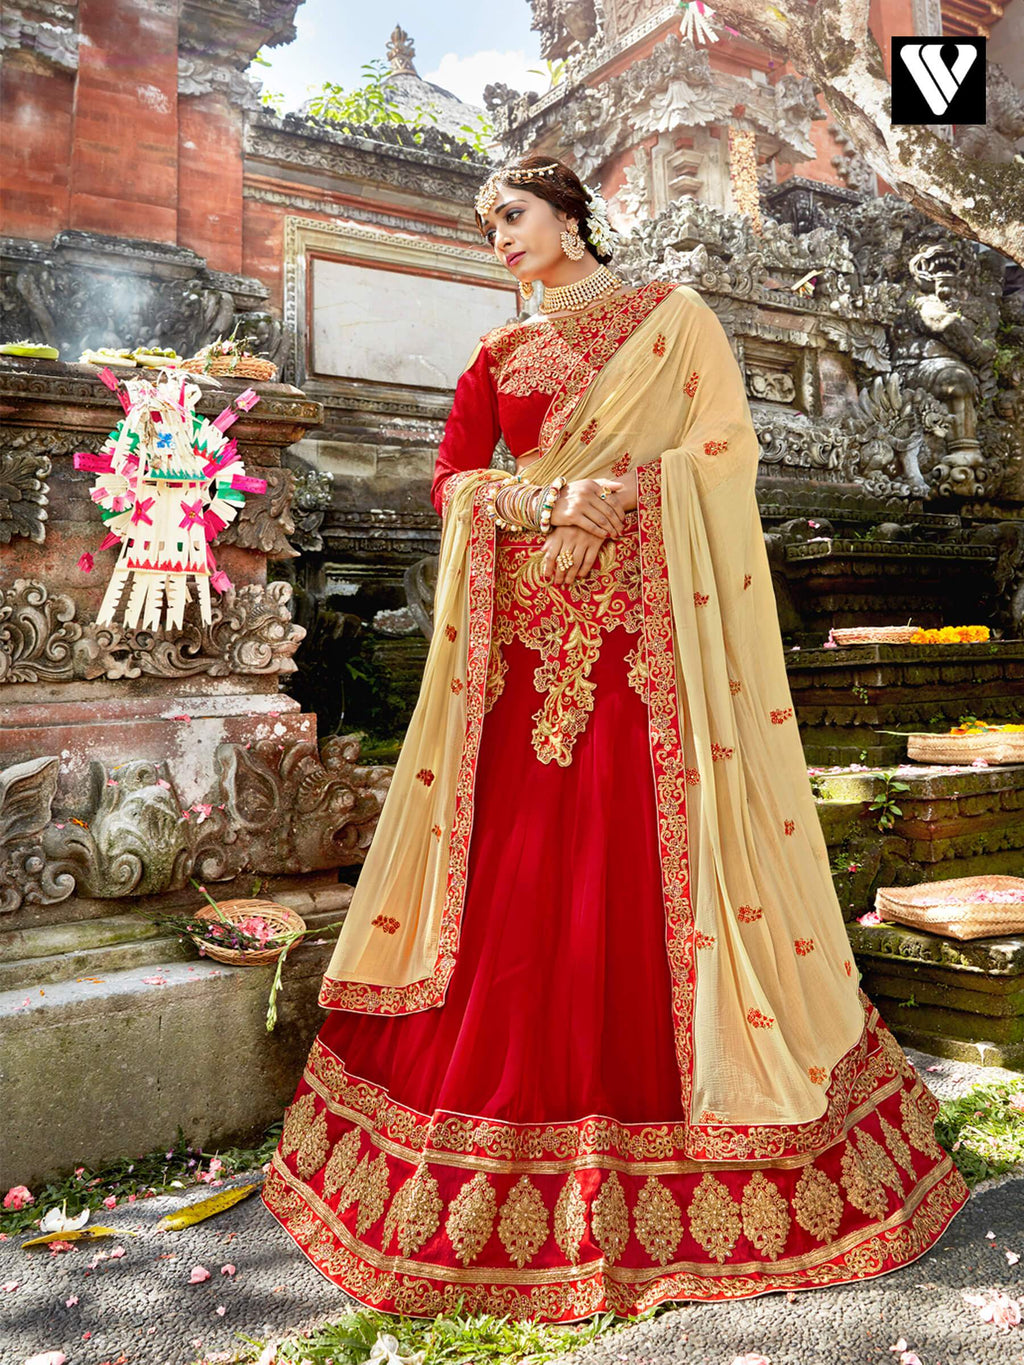 Stylish Chiffon Fabric And Red Color Lehenga Saree